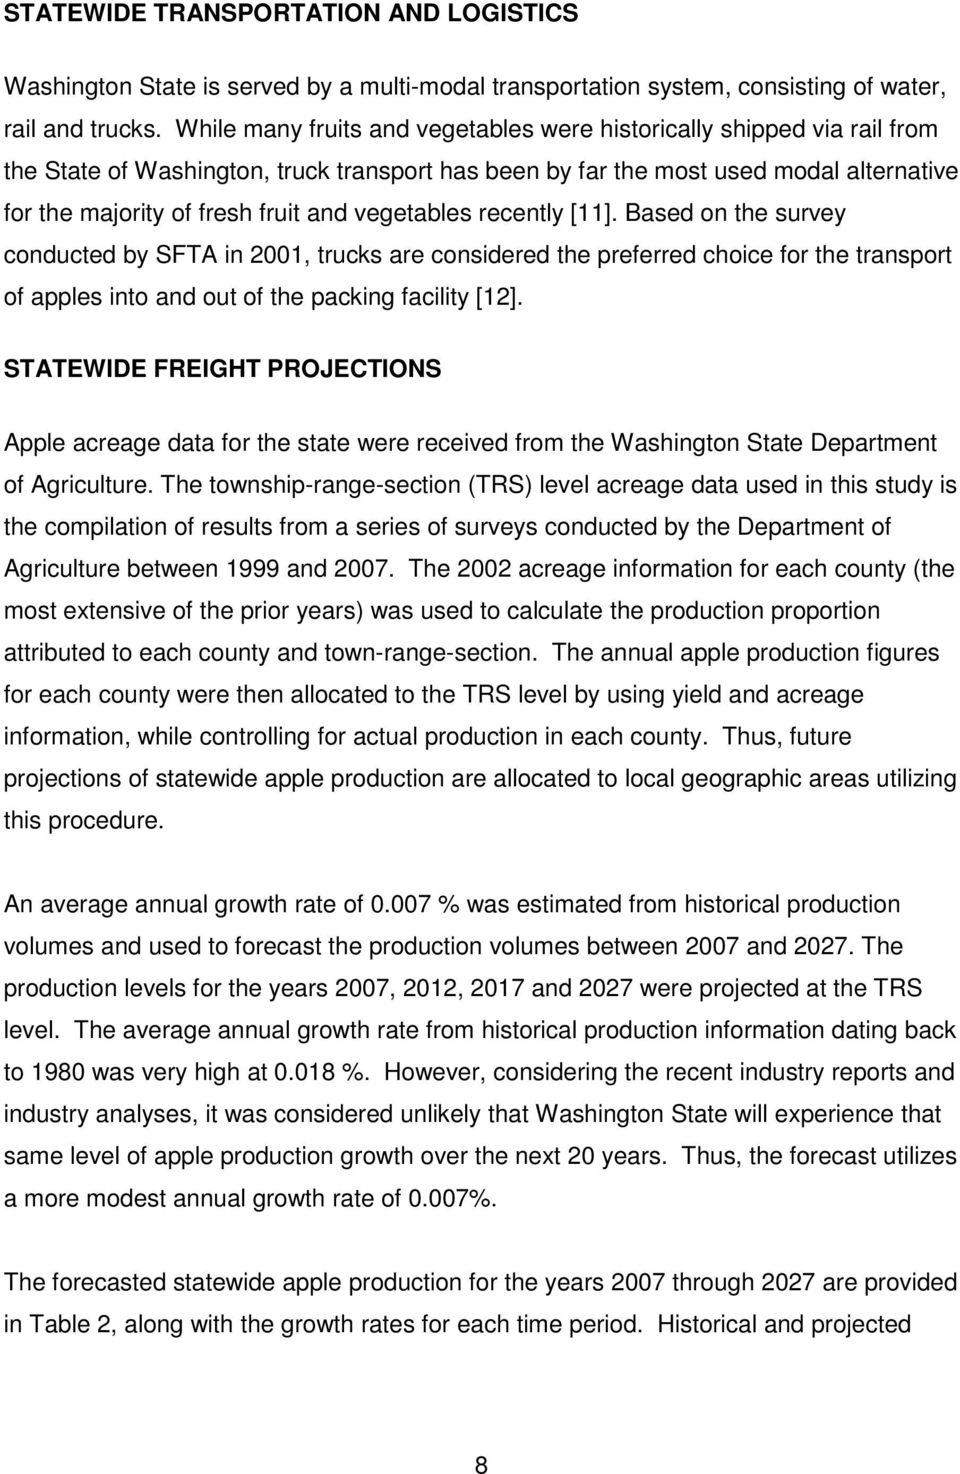 vegetables recently [11]. Based on the survey conducted by SFTA in 2001, trucks are considered the preferred choice for the transport of apples into and out of the packing facility [12].